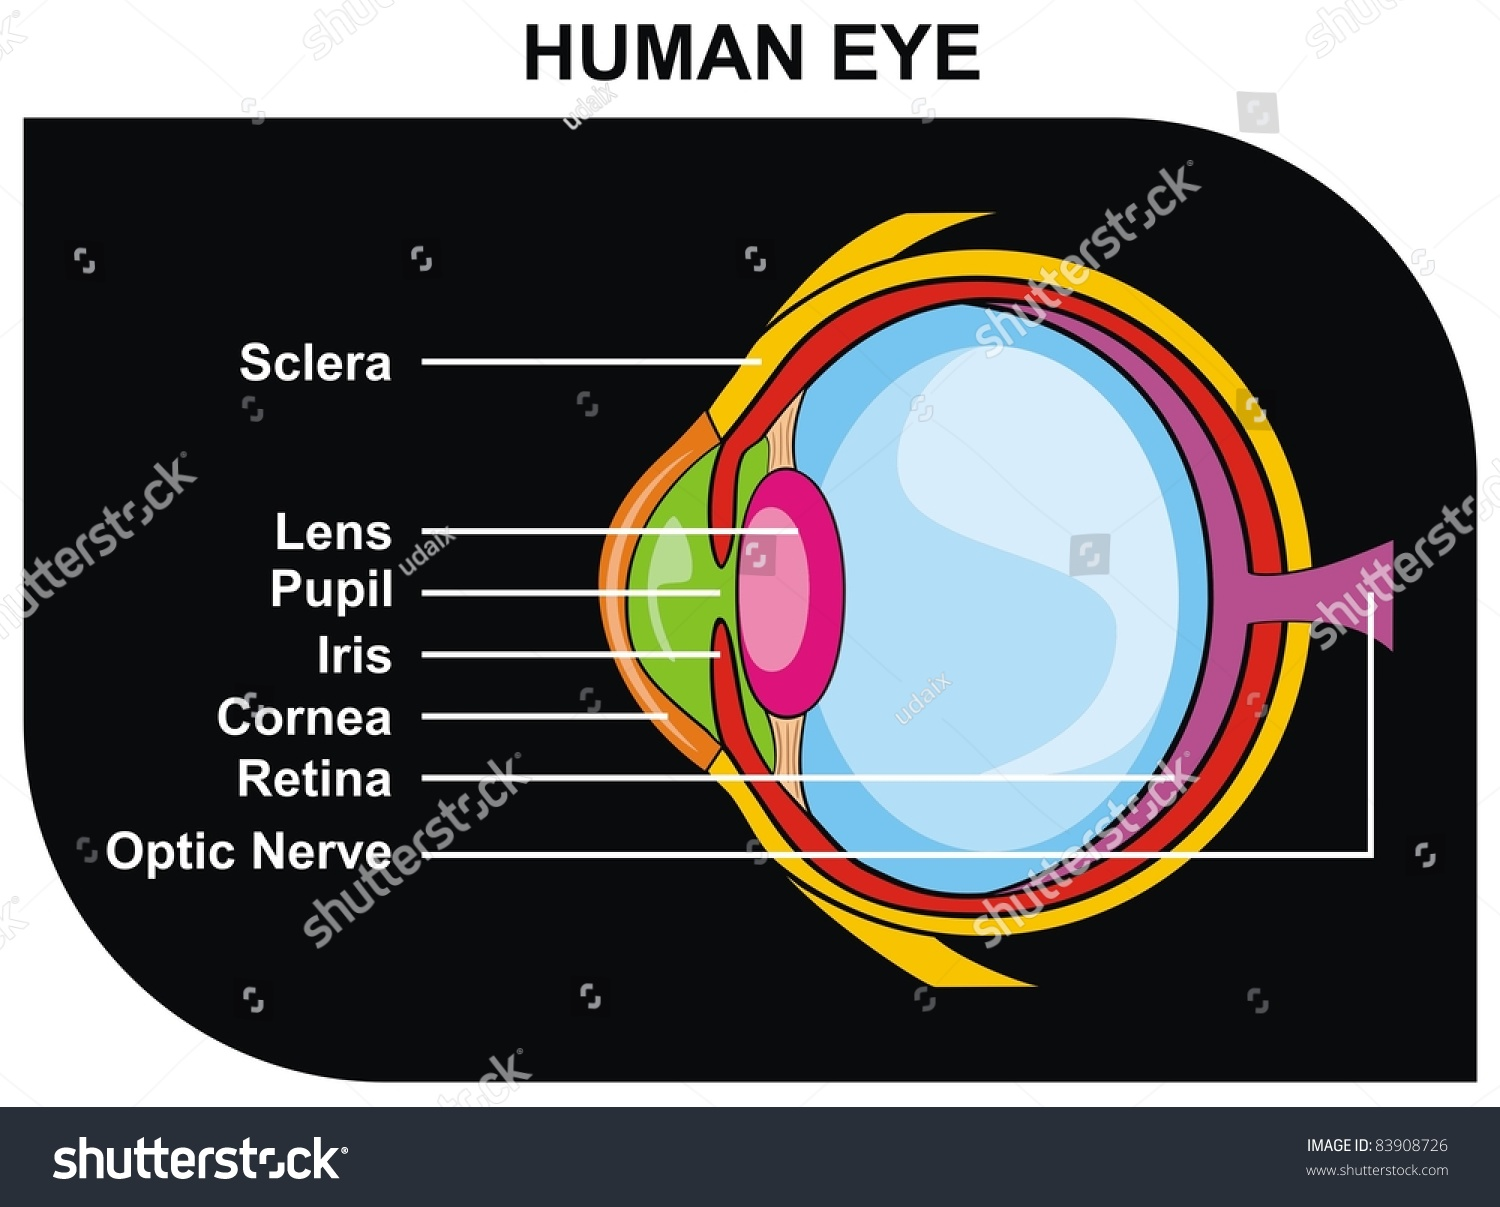 Structure Human Eye Functioning besides Crazy Friday Science New Duas Layer Discovered In Human Eyes Ophthalmology Changed Forever moreover 286 Eye likewise Eye Model Anatomy Lab Human Eye Model Youtube in addition 16088288. on eye ball diagram labeled